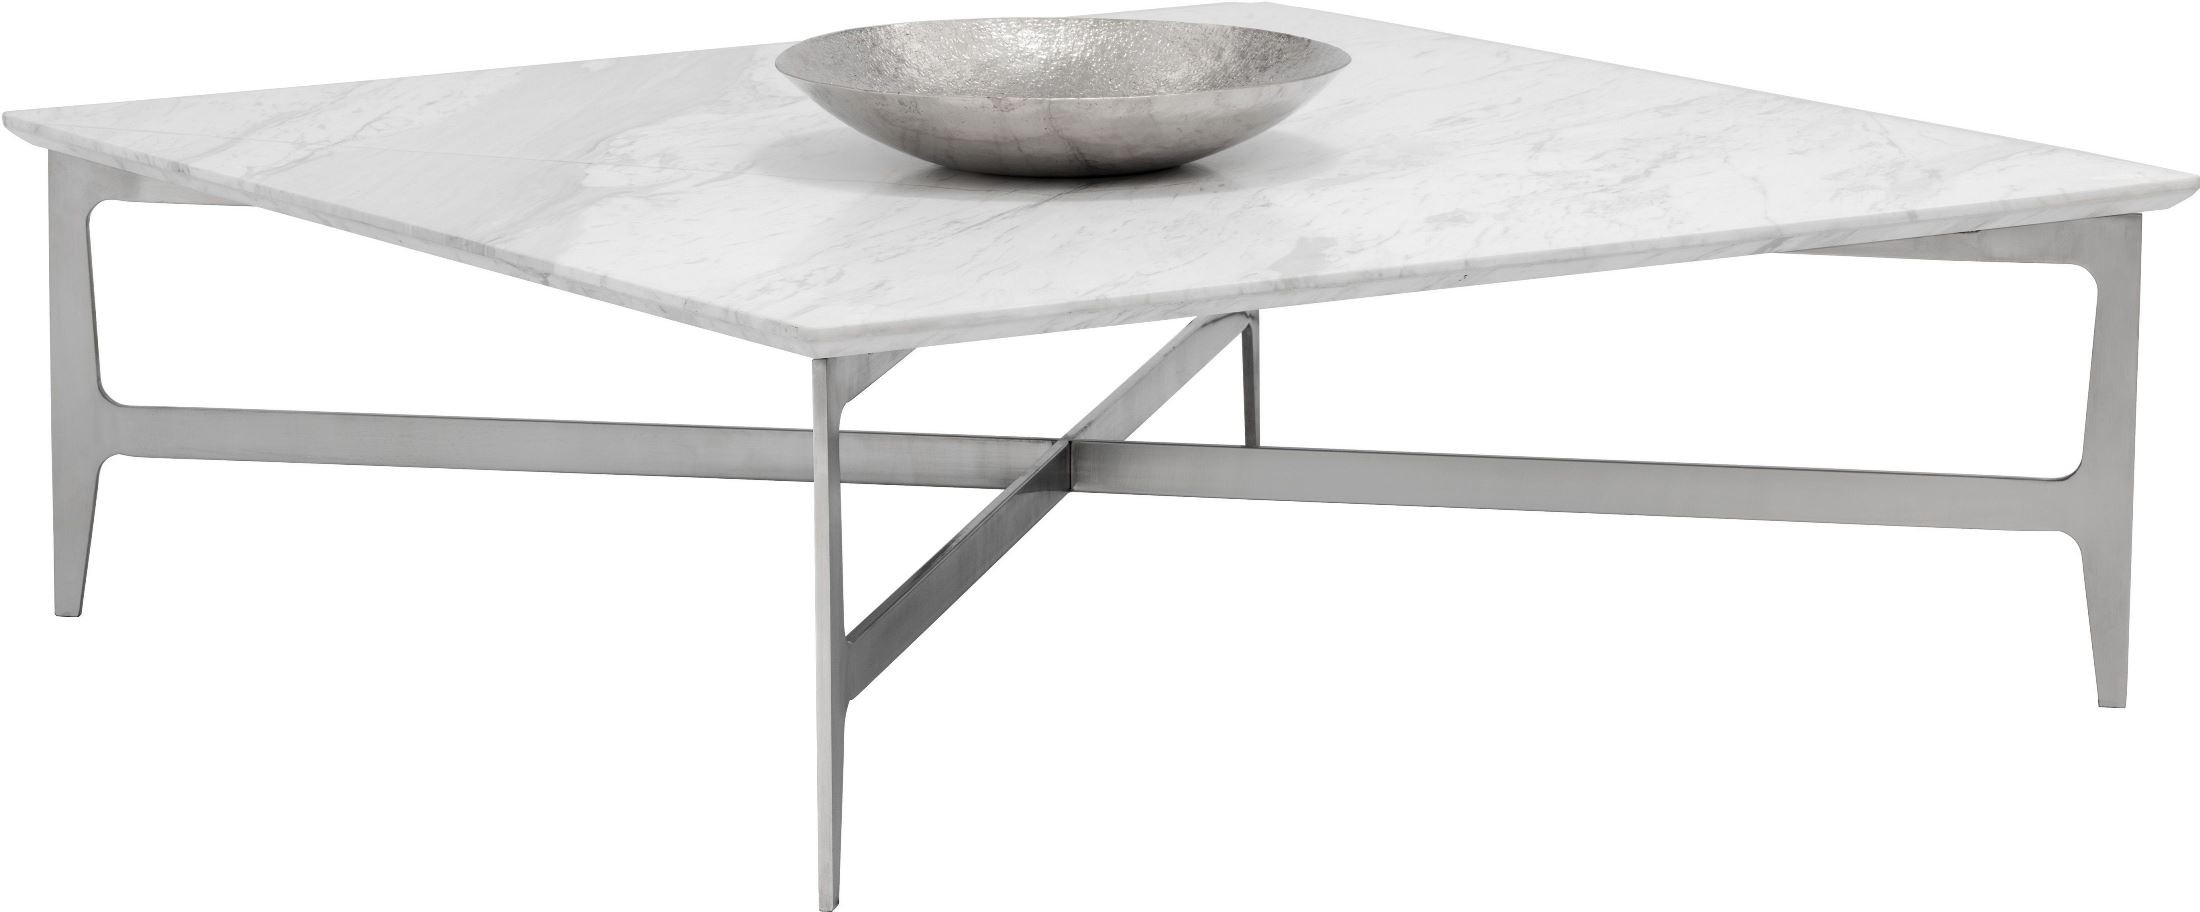 Clearwater White Marble Square Coffee Table 101503 Sunpan Modern Home